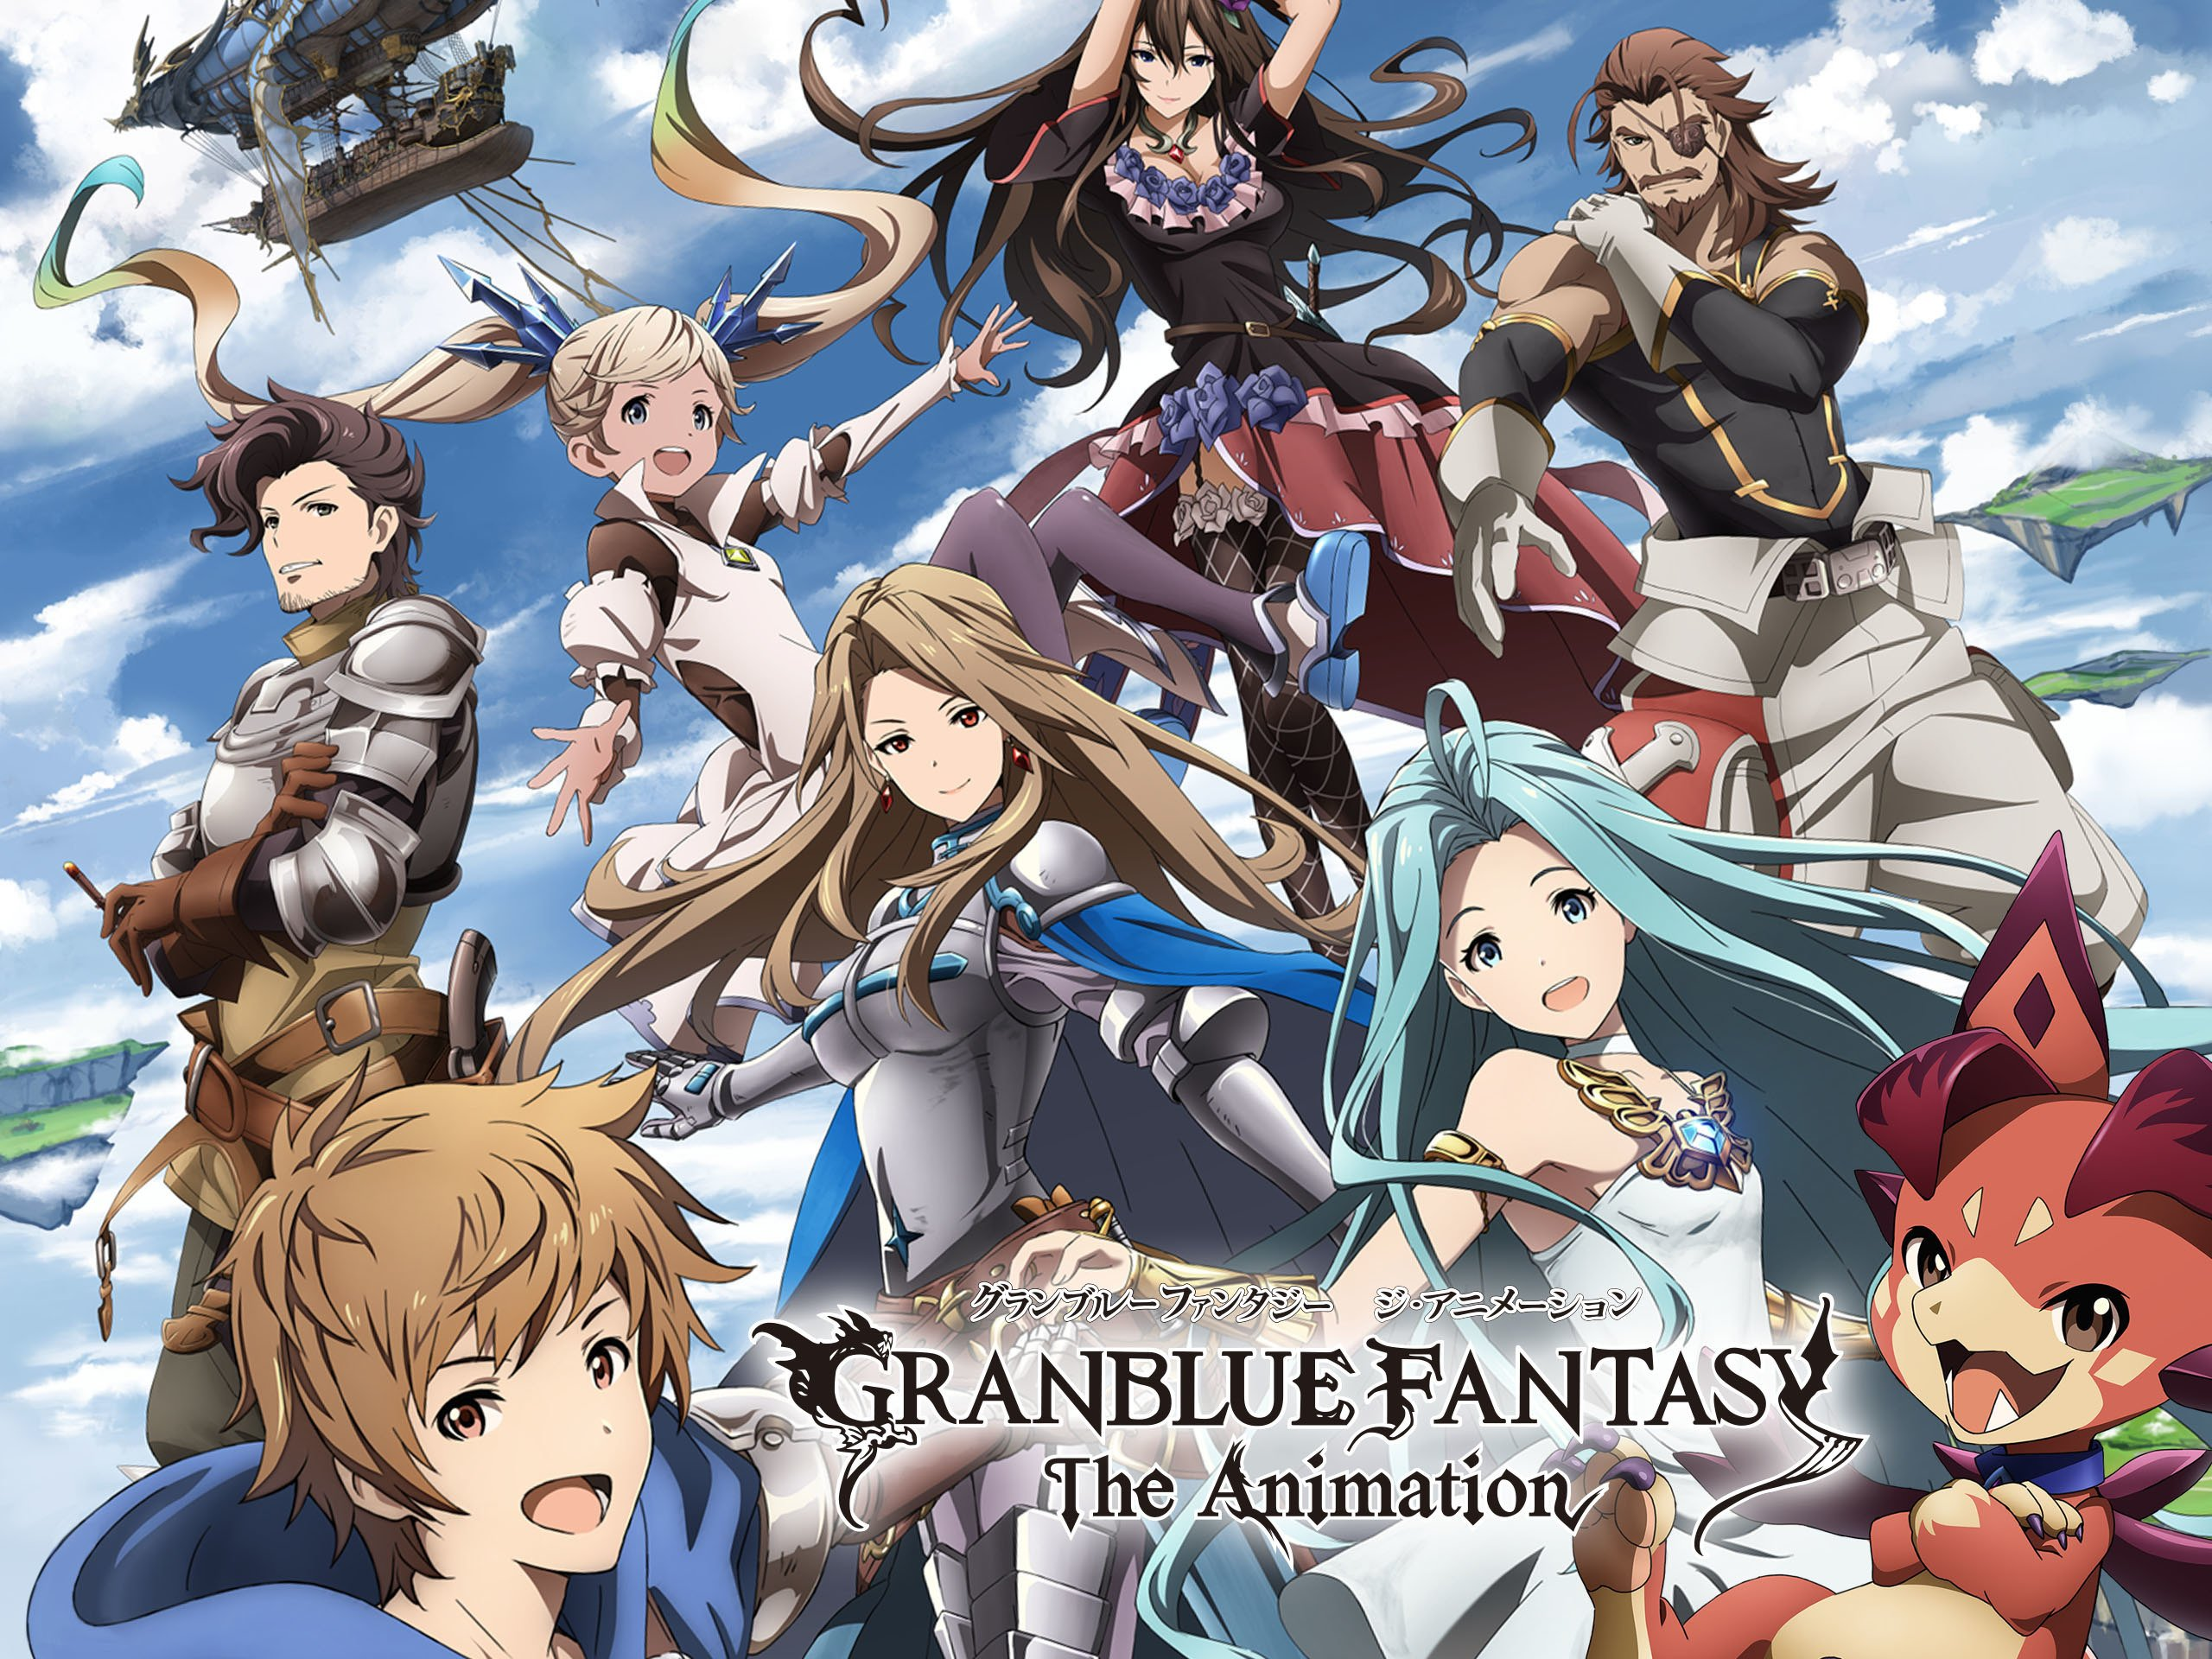 Watch Granblue Fantasy The Animation Prime Video